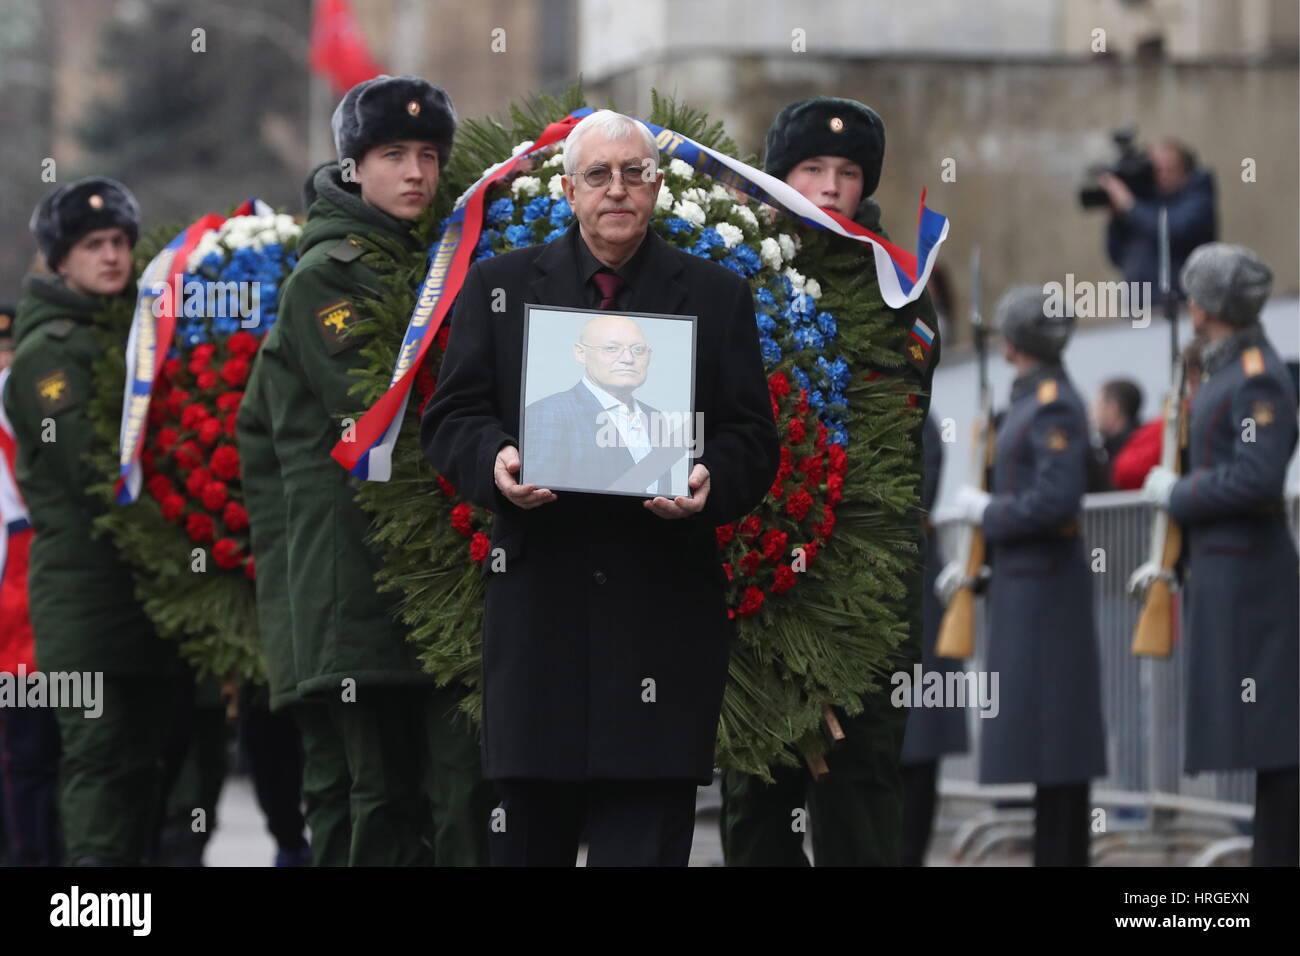 Moscow, Russia. 2nd Mar, 2017. IIHF coaching committee member Boris Mikhailov after a mourning ceremony for ice - Stock Image